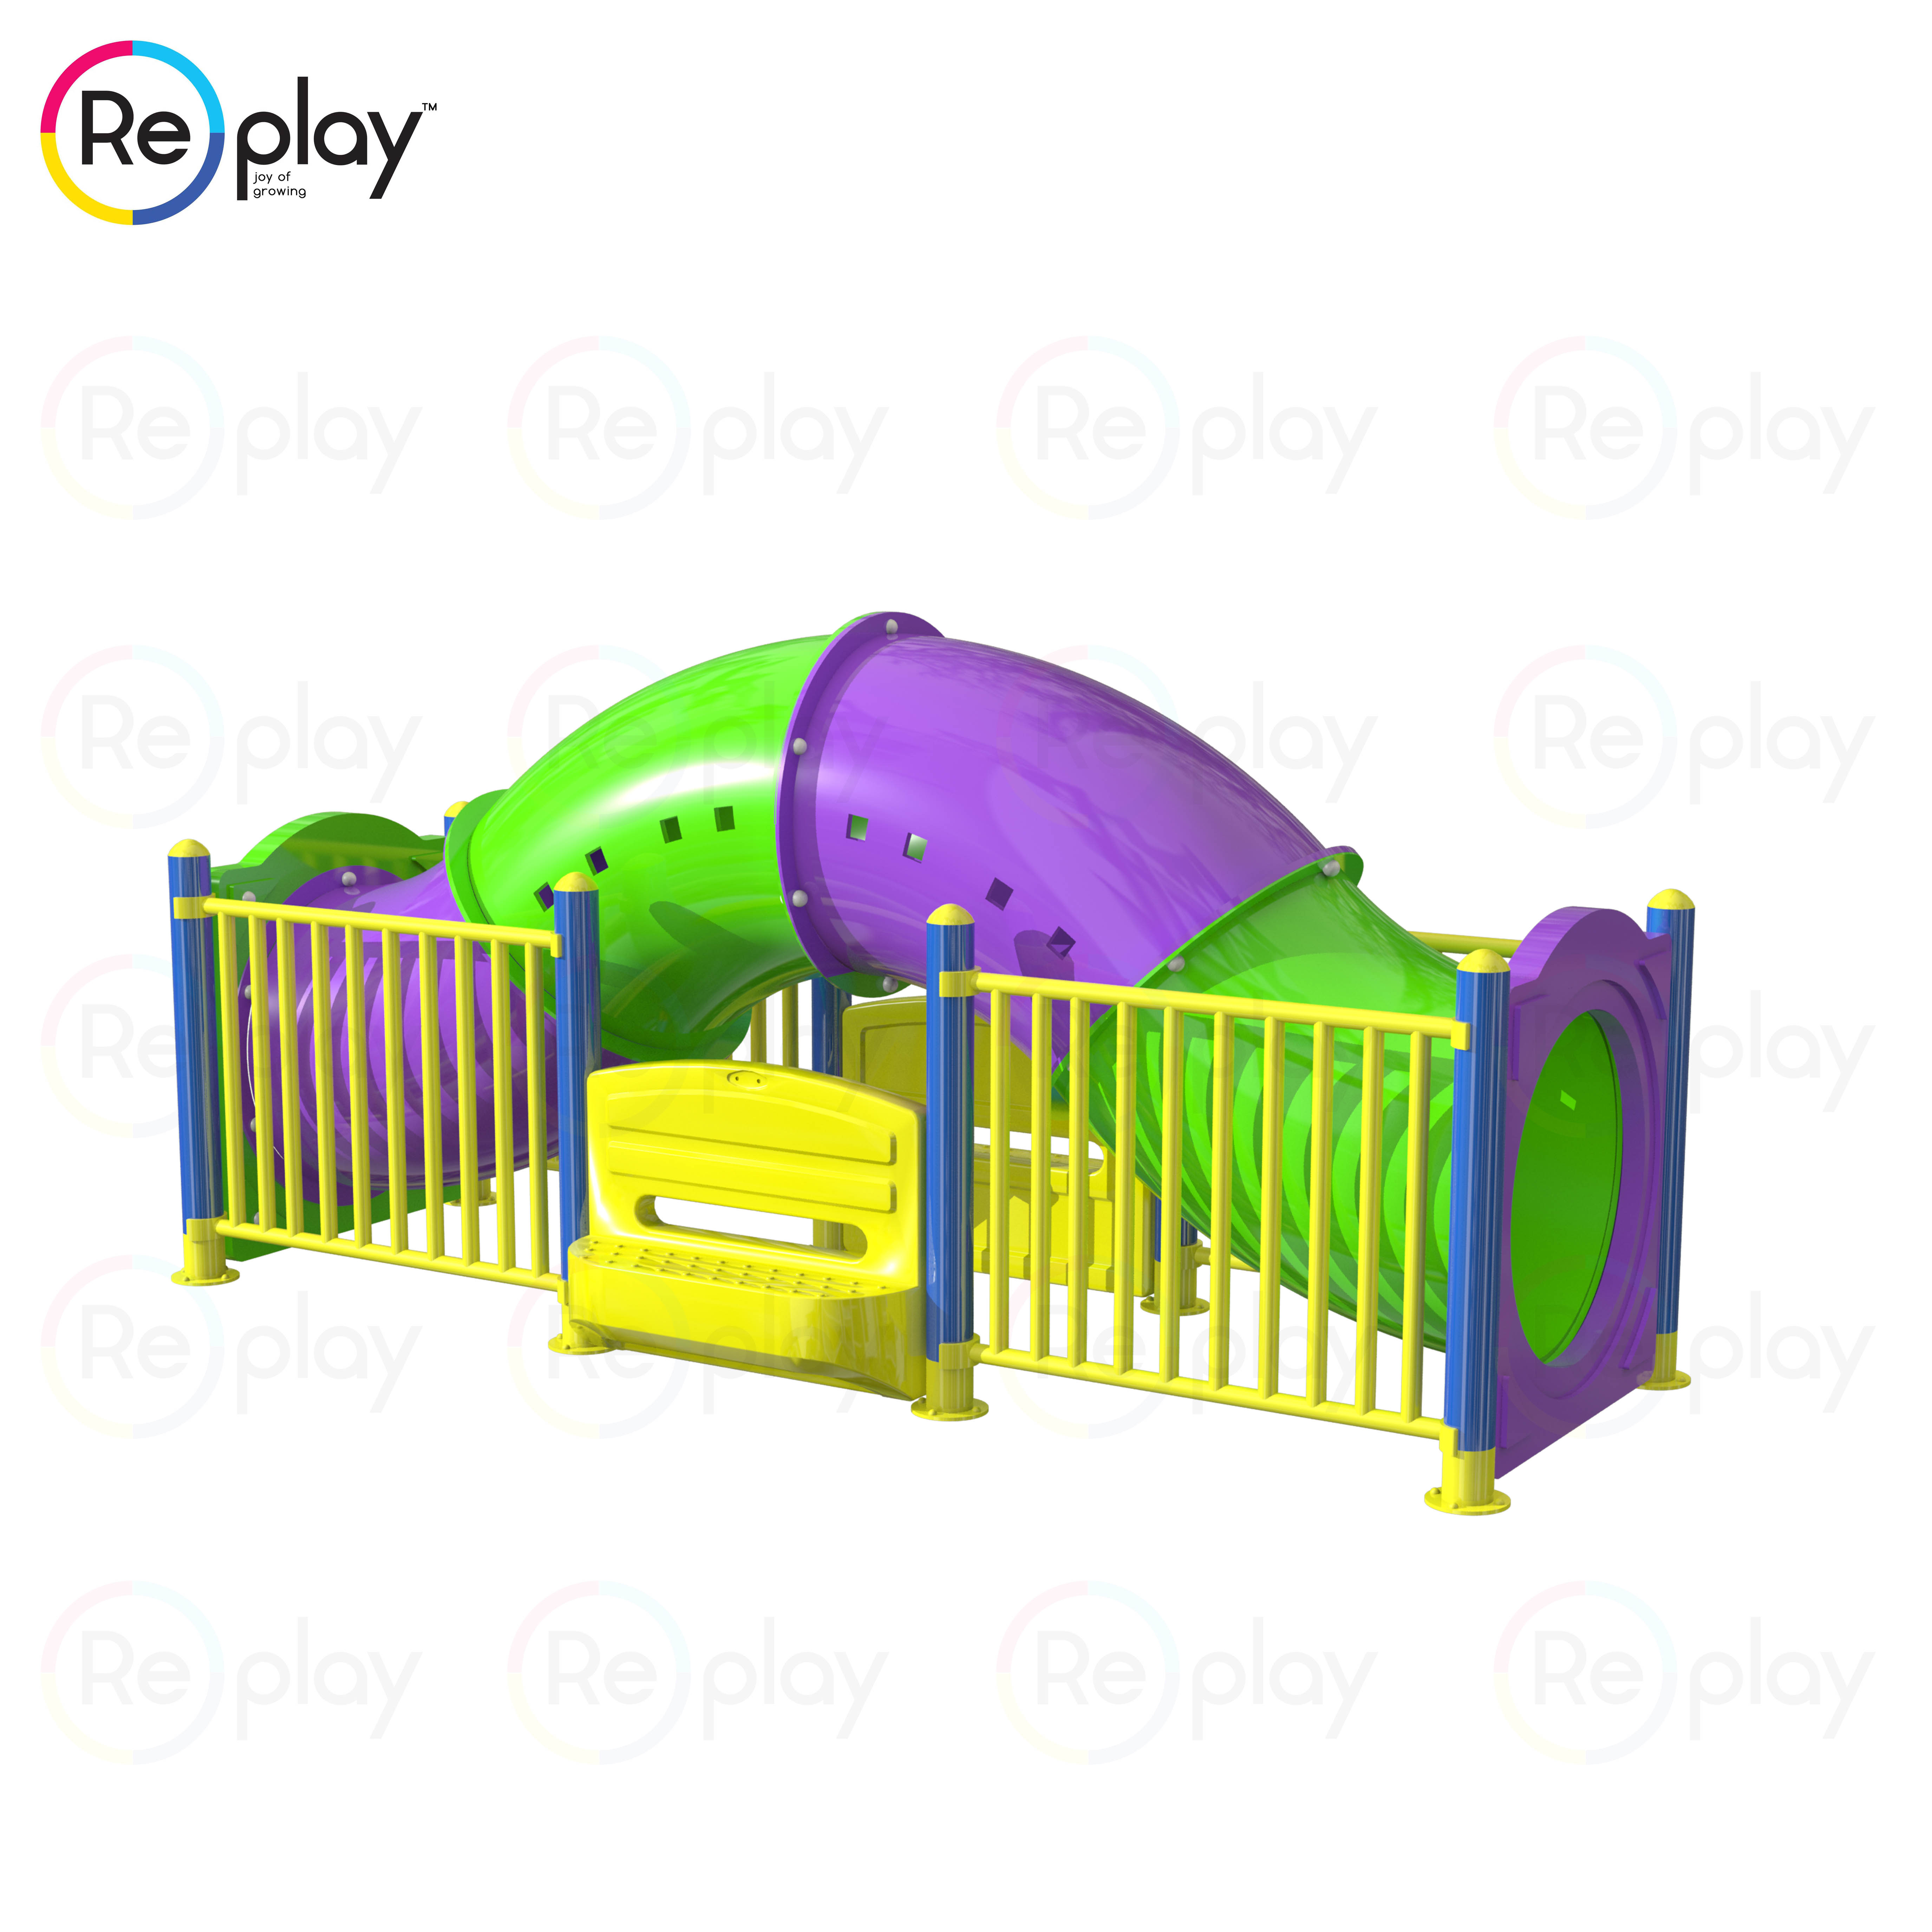 Crawling Tunnel2 - specially abled playground equipment